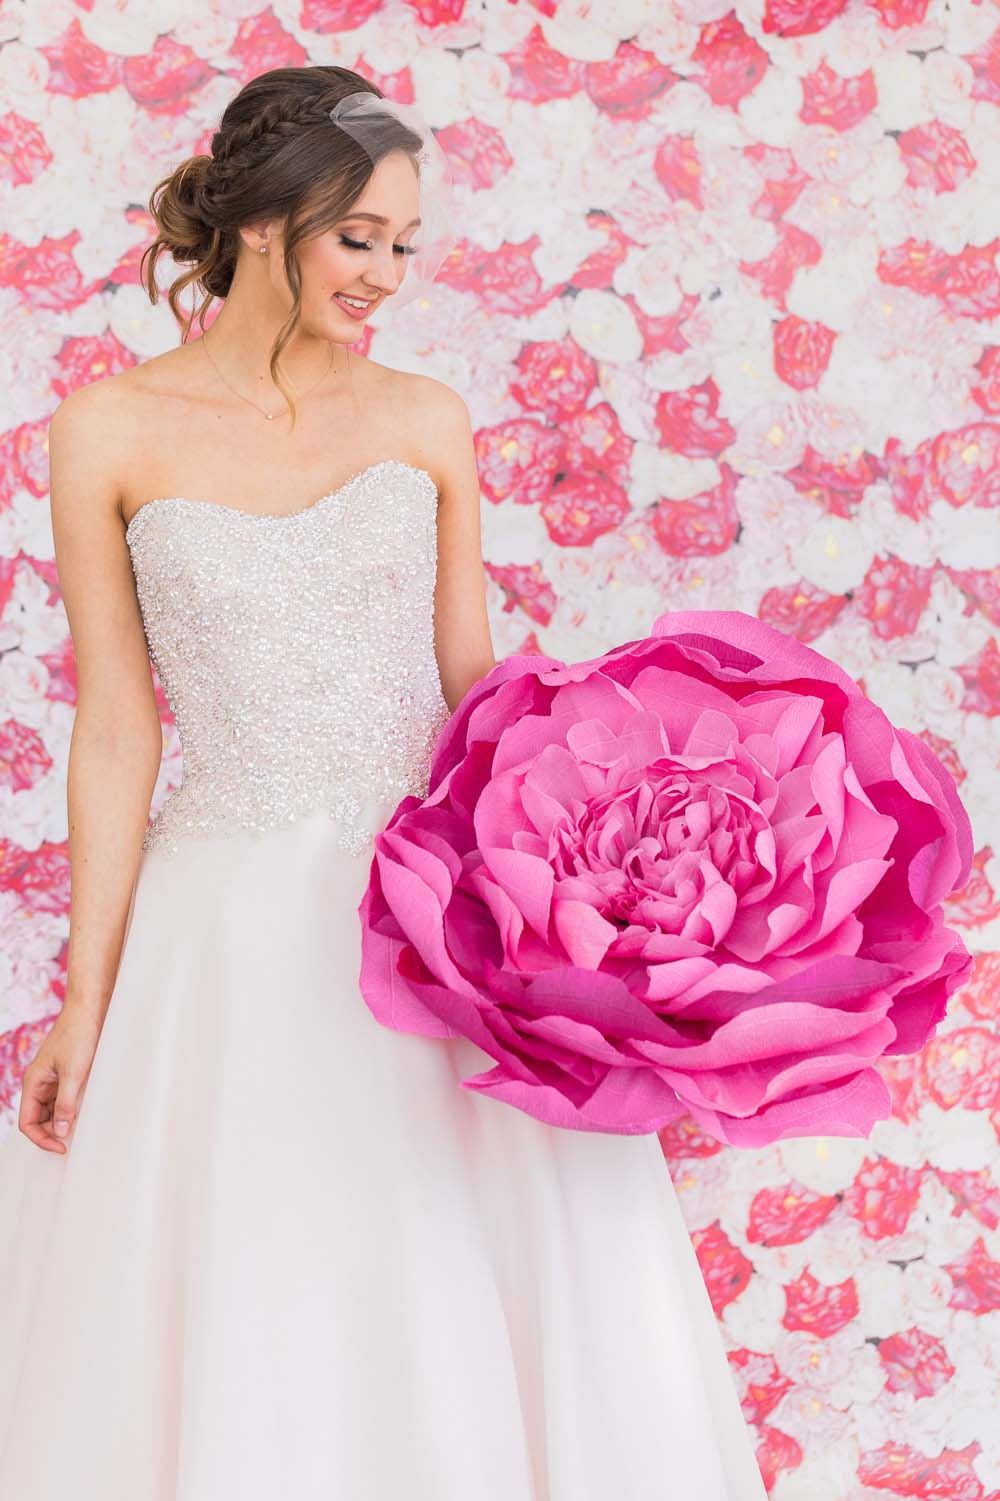 The Prettiest Romantic Pink Wedding Inspiration - bride and paper peony